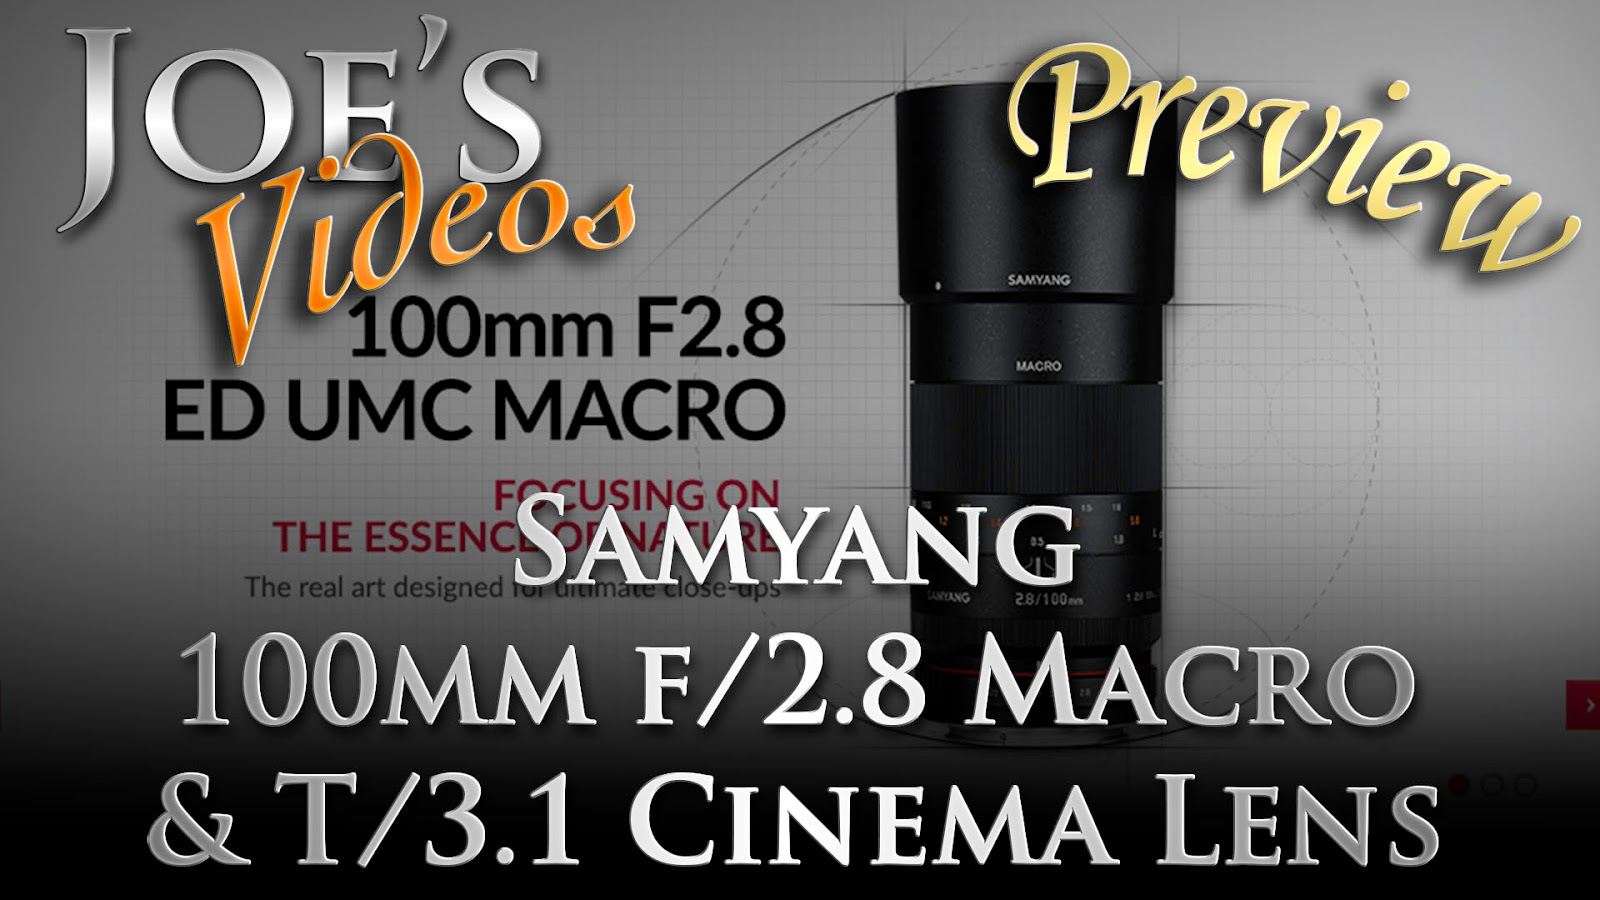 Samyang 100mm F/2.8 ED UMC Macro & T3.1 VDSLR Cinema Lens Preview | Joe's Videos